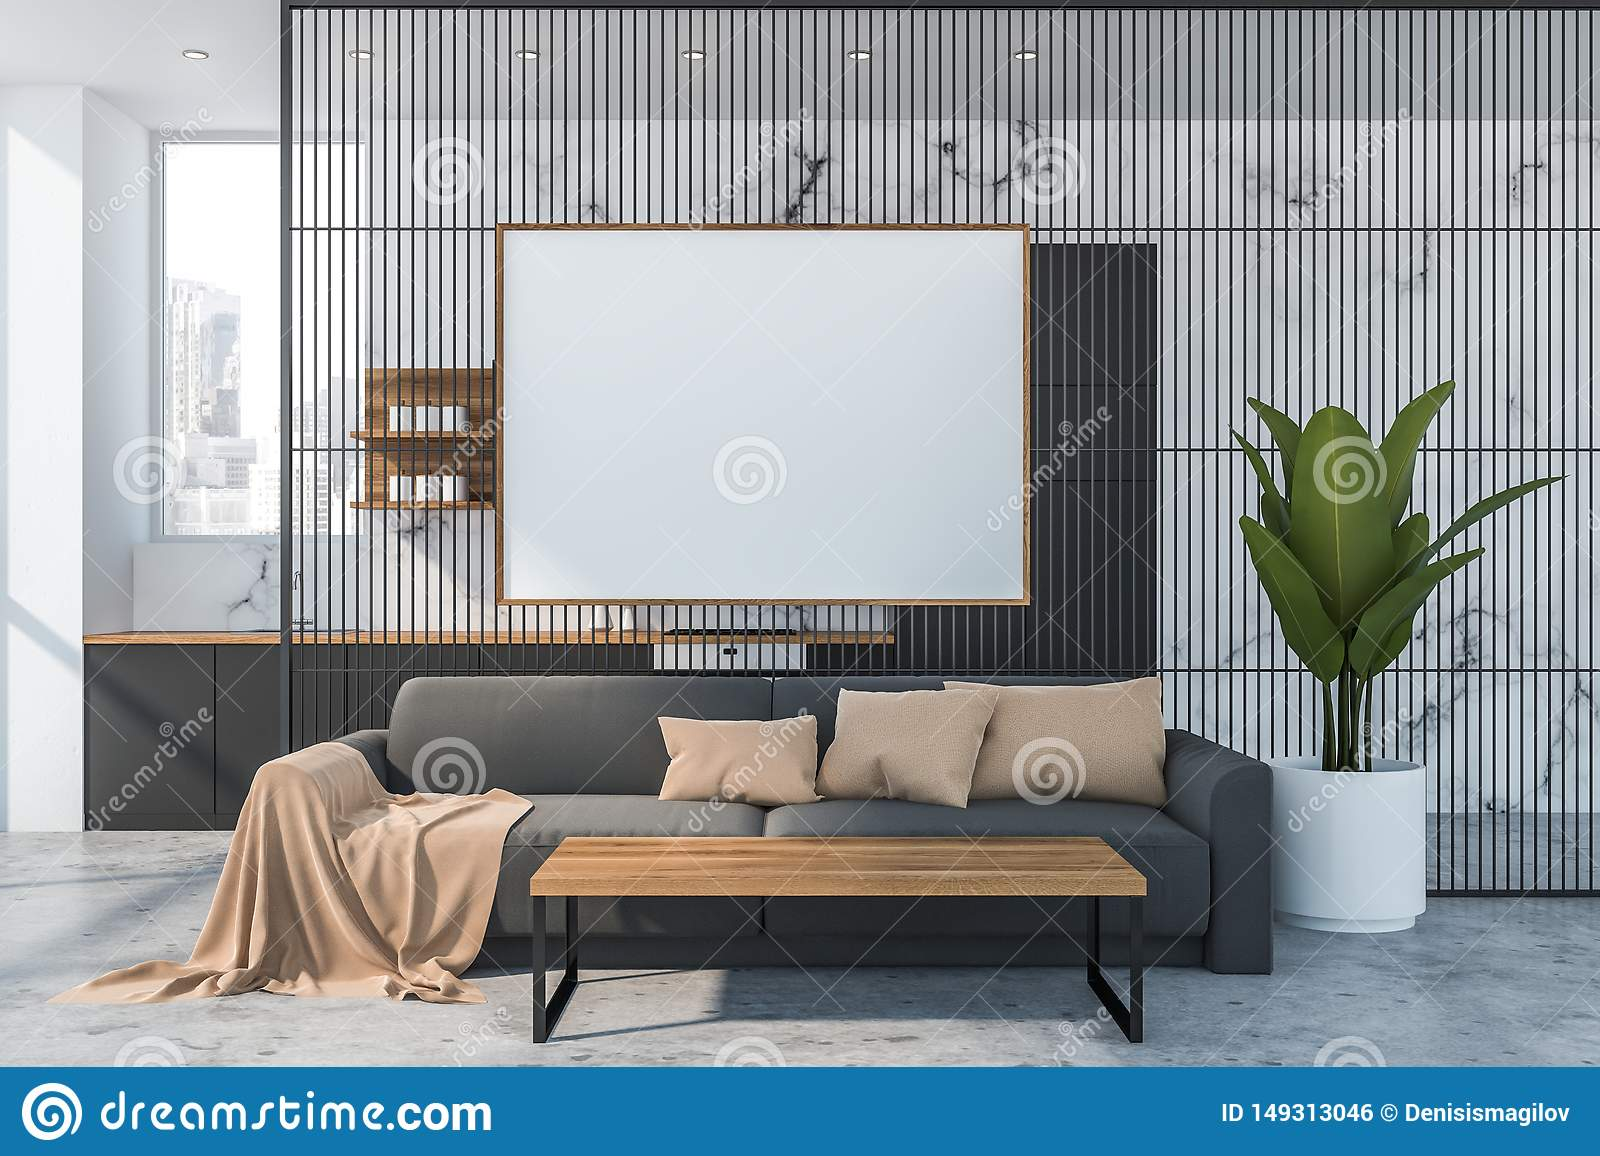 Marble Living Room And Kitchen Poster Stock Illustration Illustration Of Gray Marble 149313046